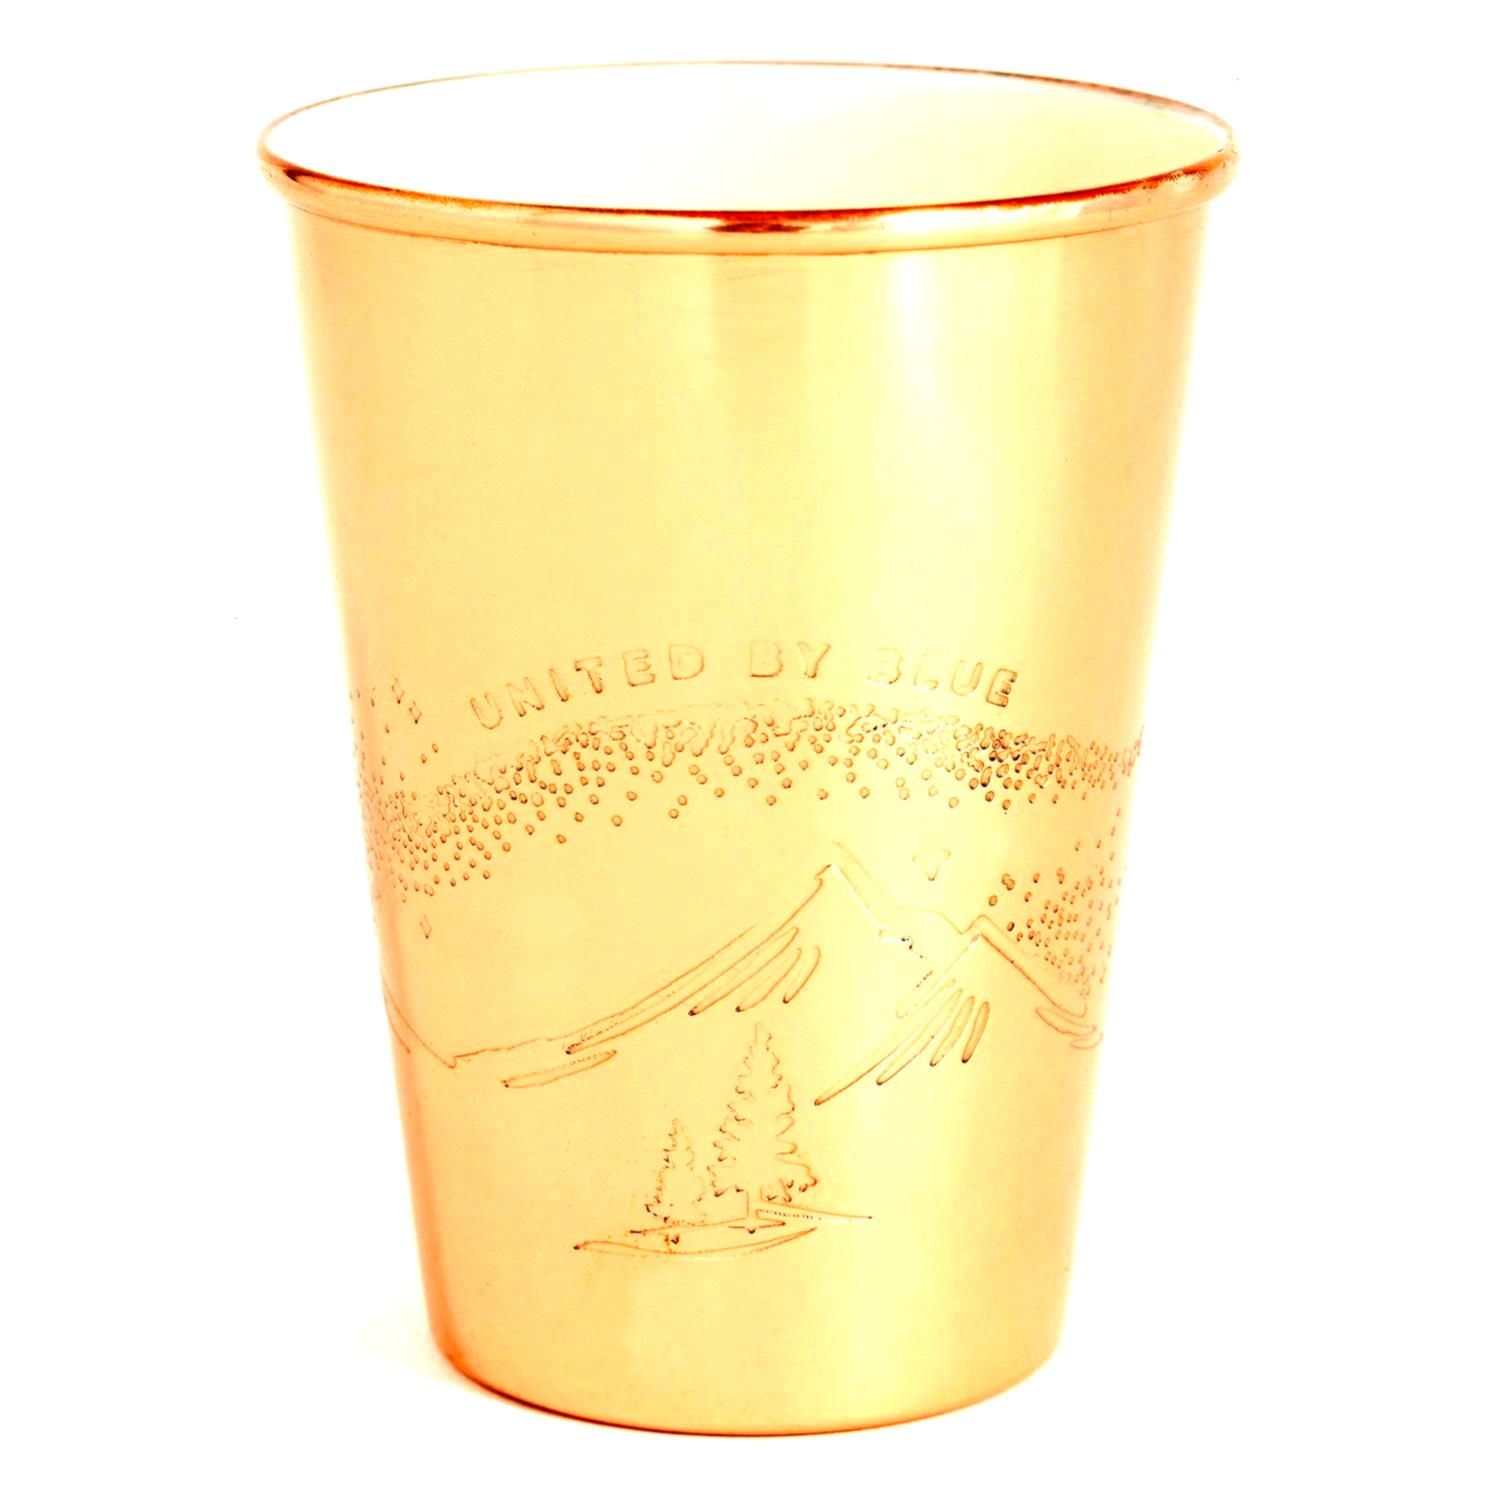 By Blue Mountain Gaze 16oz Copper TumblerUnited By Blue Mountain Gaze 16oz Copper Tumbler Smart Measuring Cup  Ever find yourself wishing you had a measuring cup thermome...